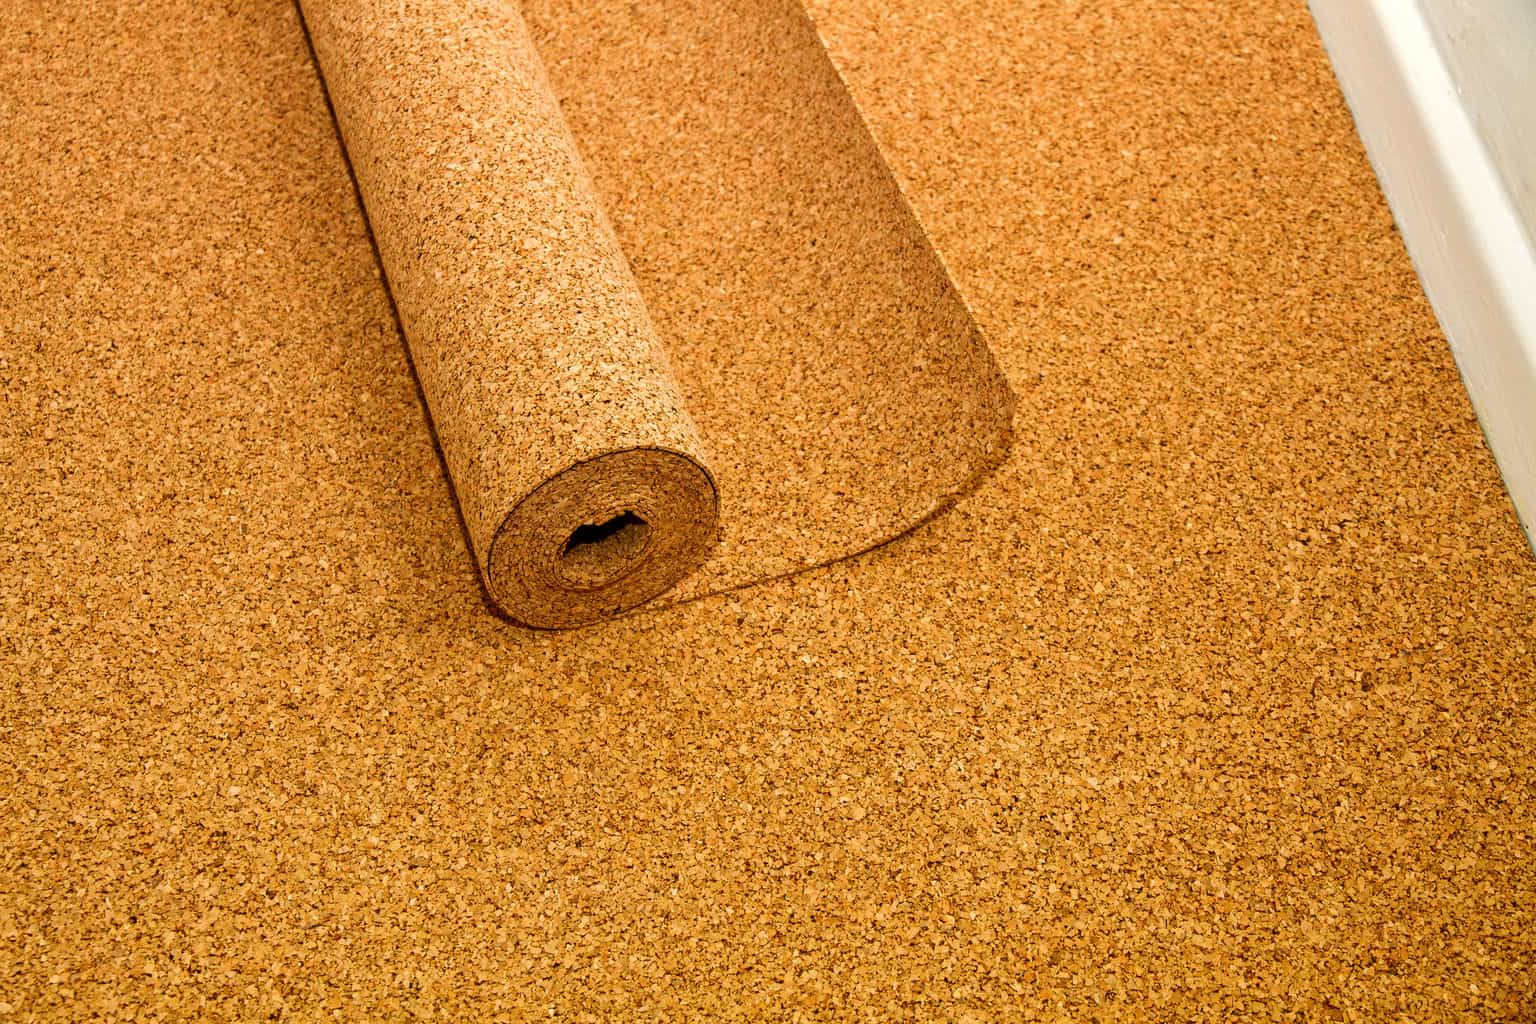 How to install cork flooring tips and guidelines for for Linoleum cork